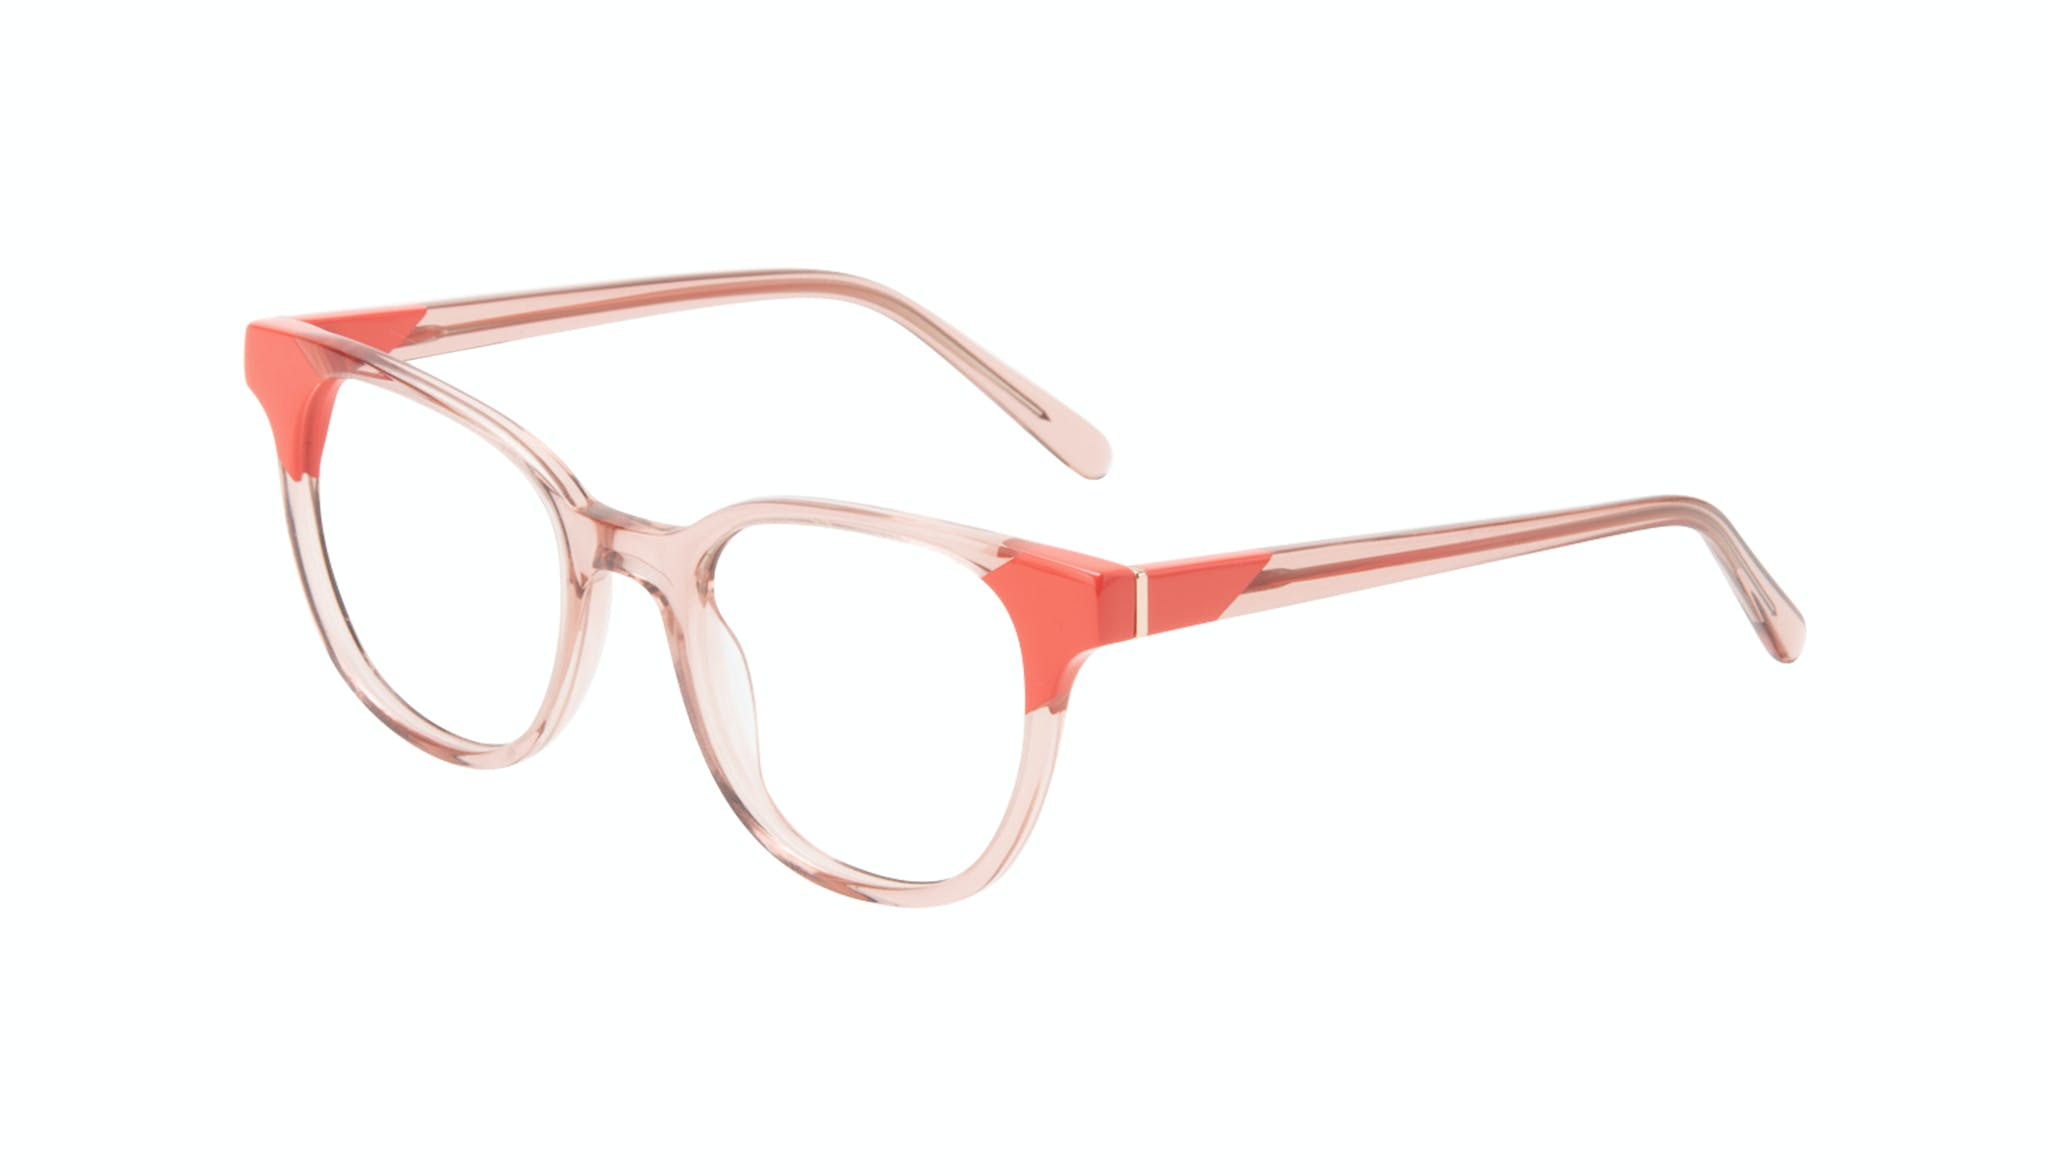 Affordable Fashion Glasses Square Eyeglasses Women Lively Pink Coral Tilt